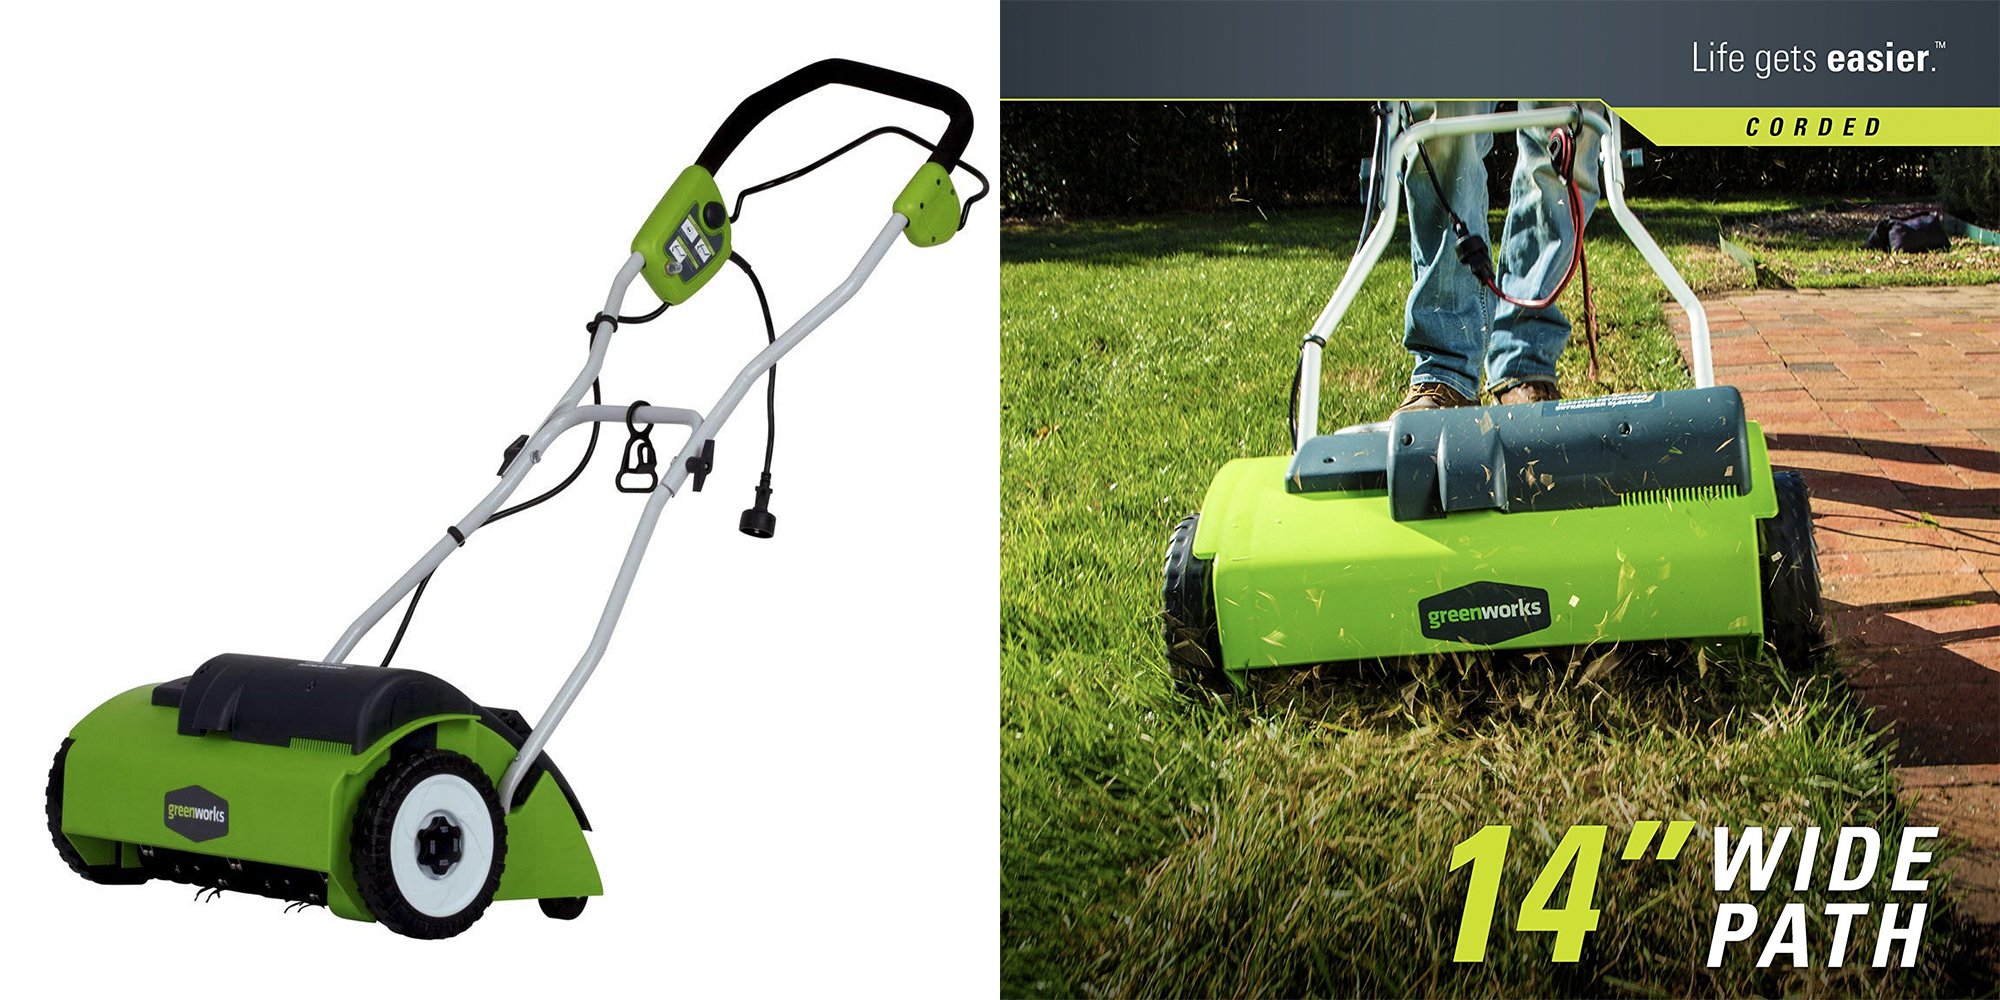 Green Deals Greenworks 14 Inch 10a Electric Dethatcher 85 More 9to5toys Buy it and save at globalindustrial.com. 9to5toys